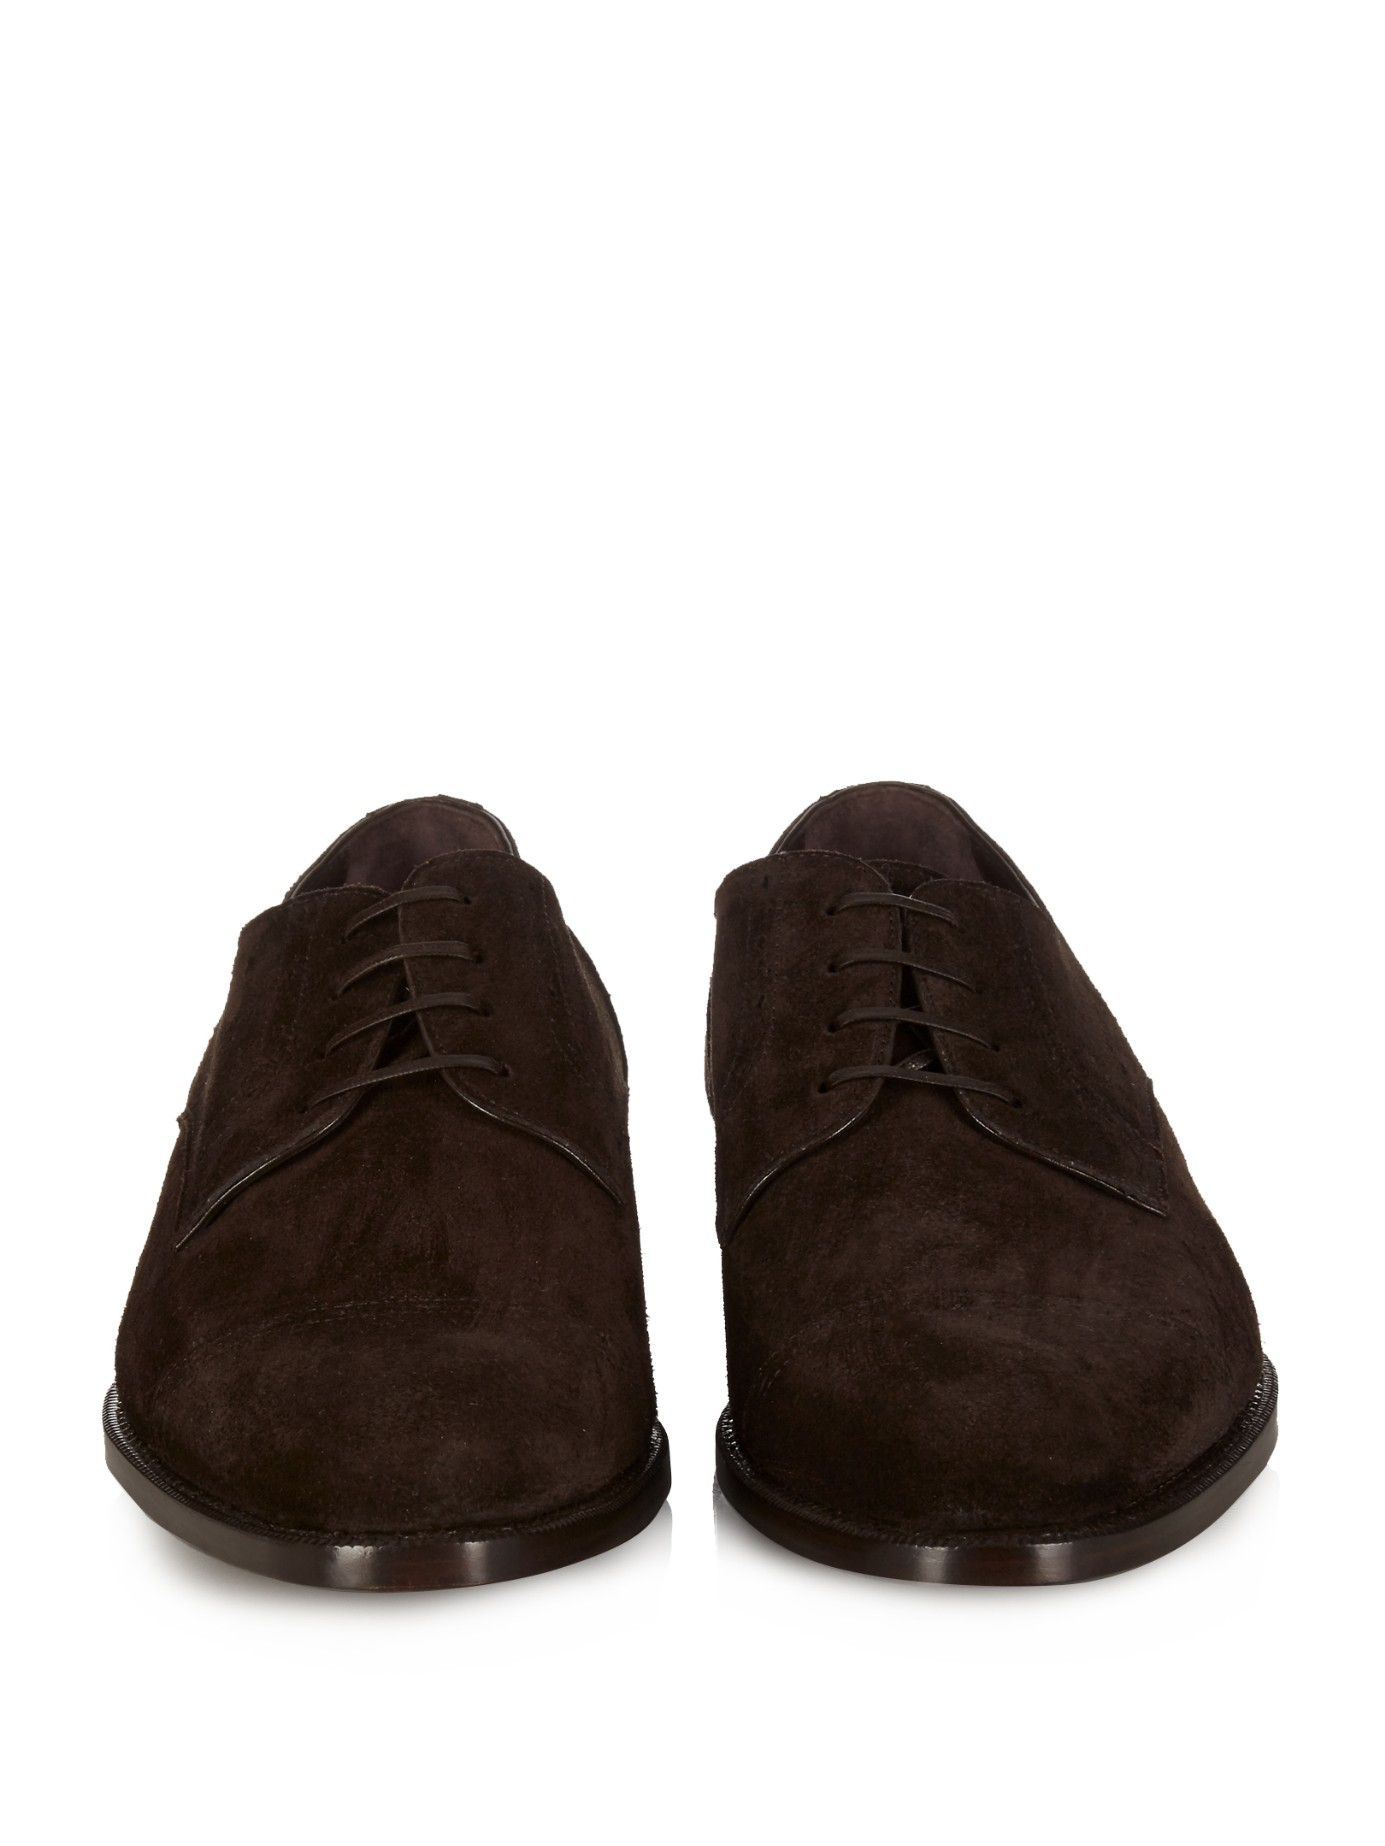 Lyst Ermenegildo Zegna Lace Up Suede Oxford Shoes In